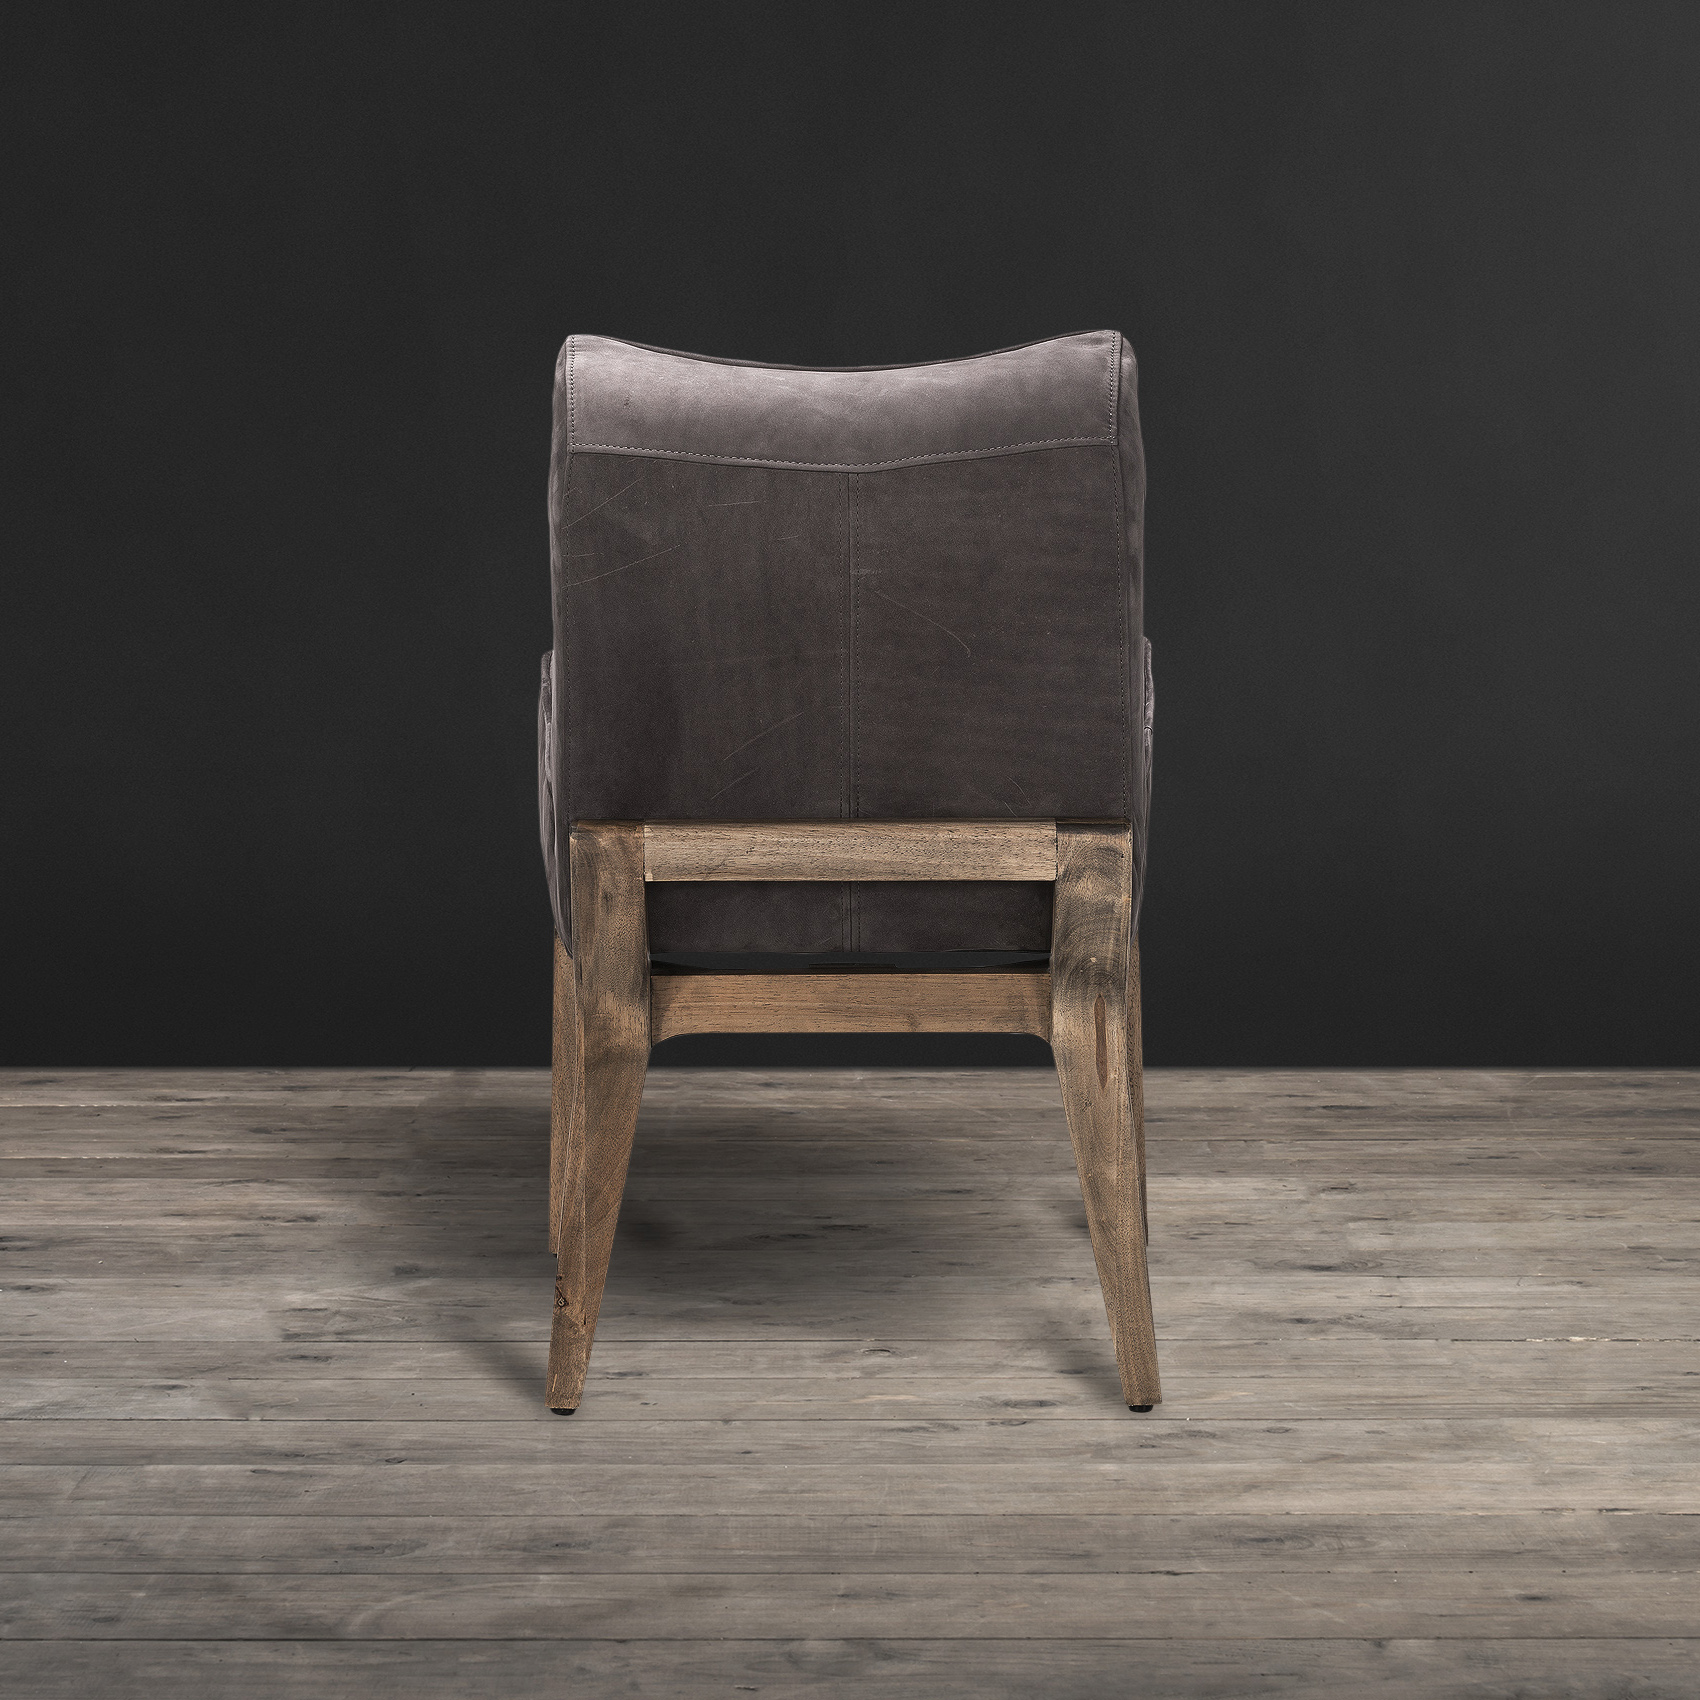 grey leather recliner chair uk office lumbar support cushion timothy oulton creek dining